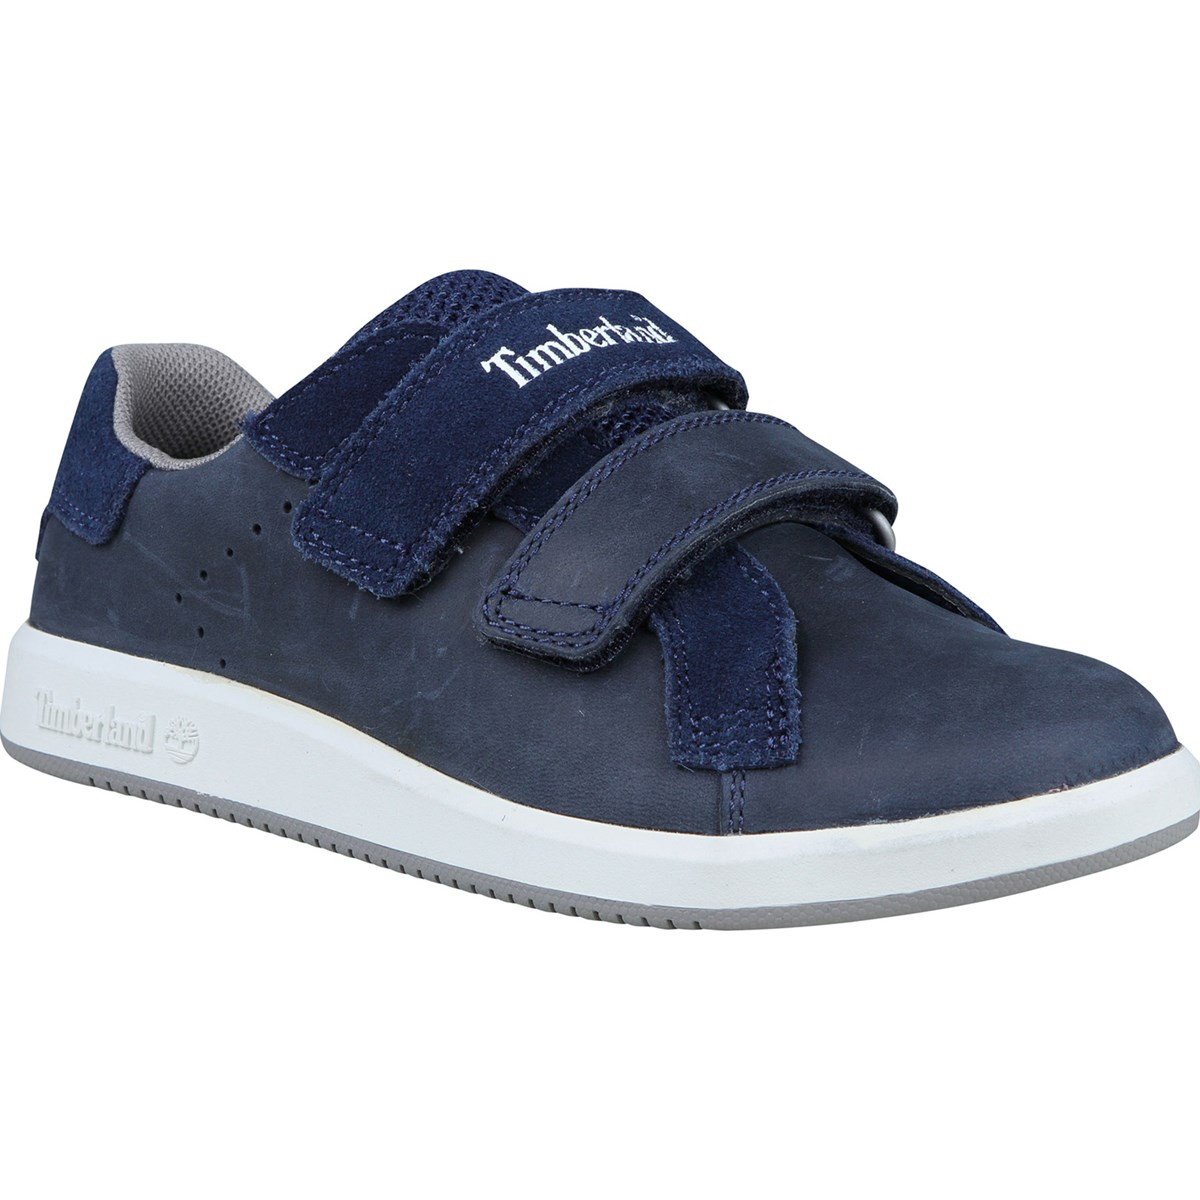 Kjøp Timberland - Sneakers, Courtside Hook-and-Loop Oxford, Youth - Lekmer.no – Kjøp ...